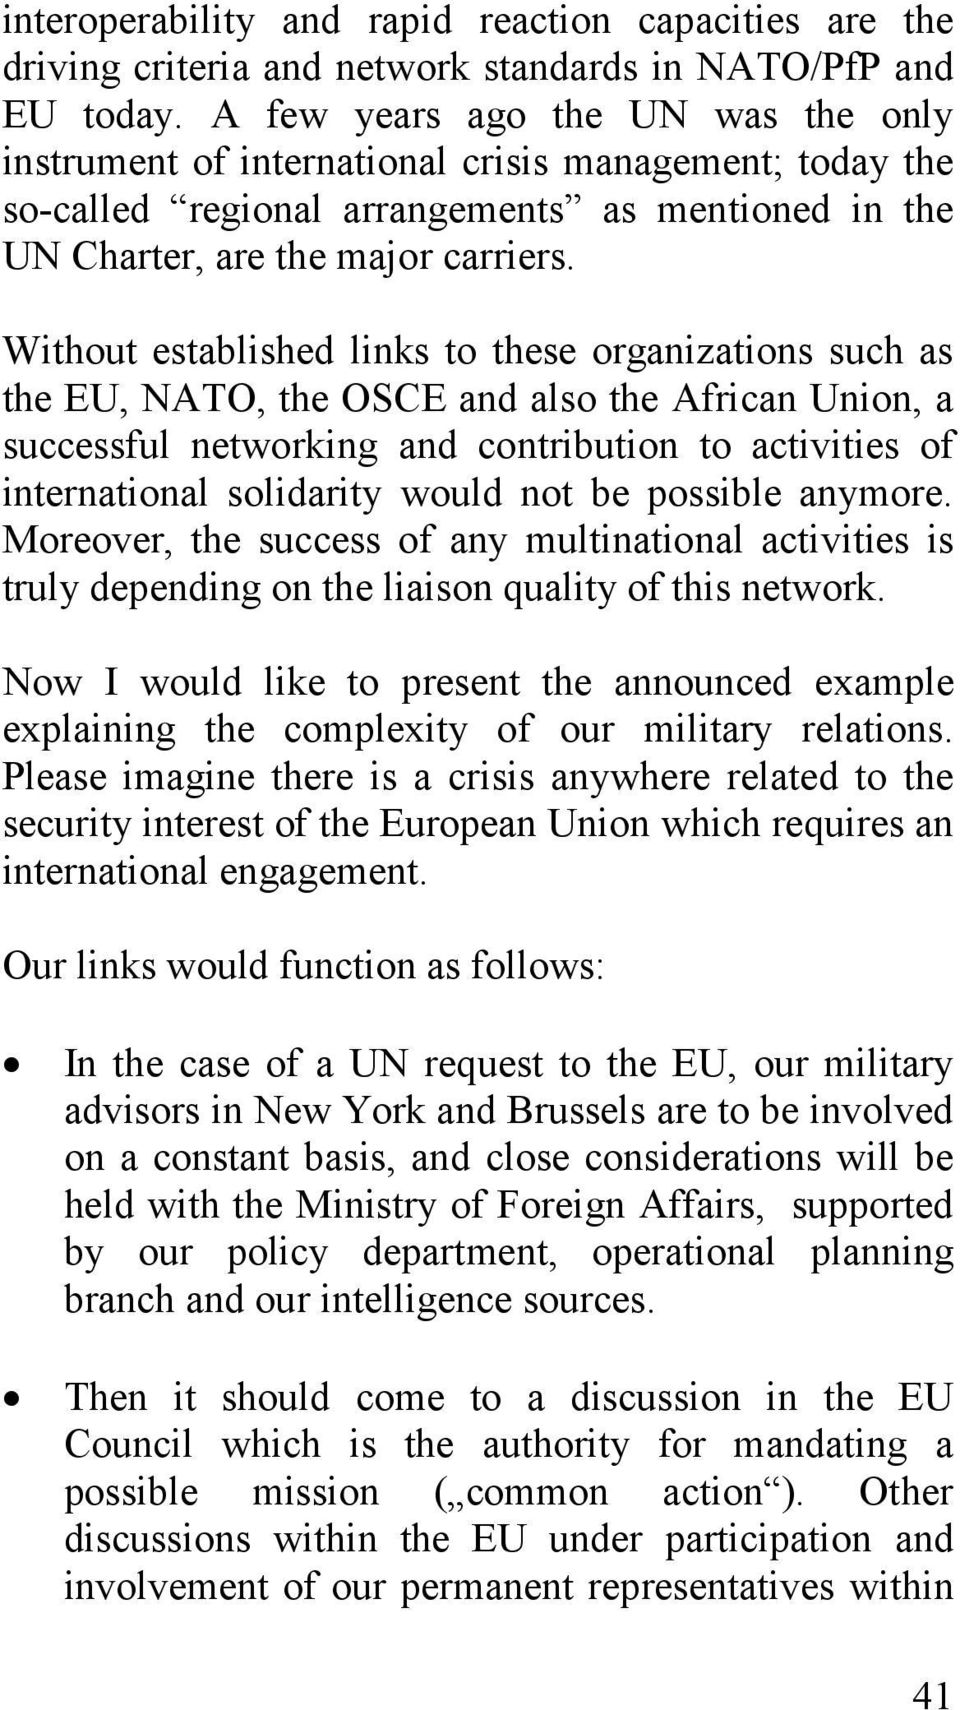 Without established links to these organizations such as the EU, NATO, the OSCE and also the African Union, a successful networking and contribution to activities of international solidarity would